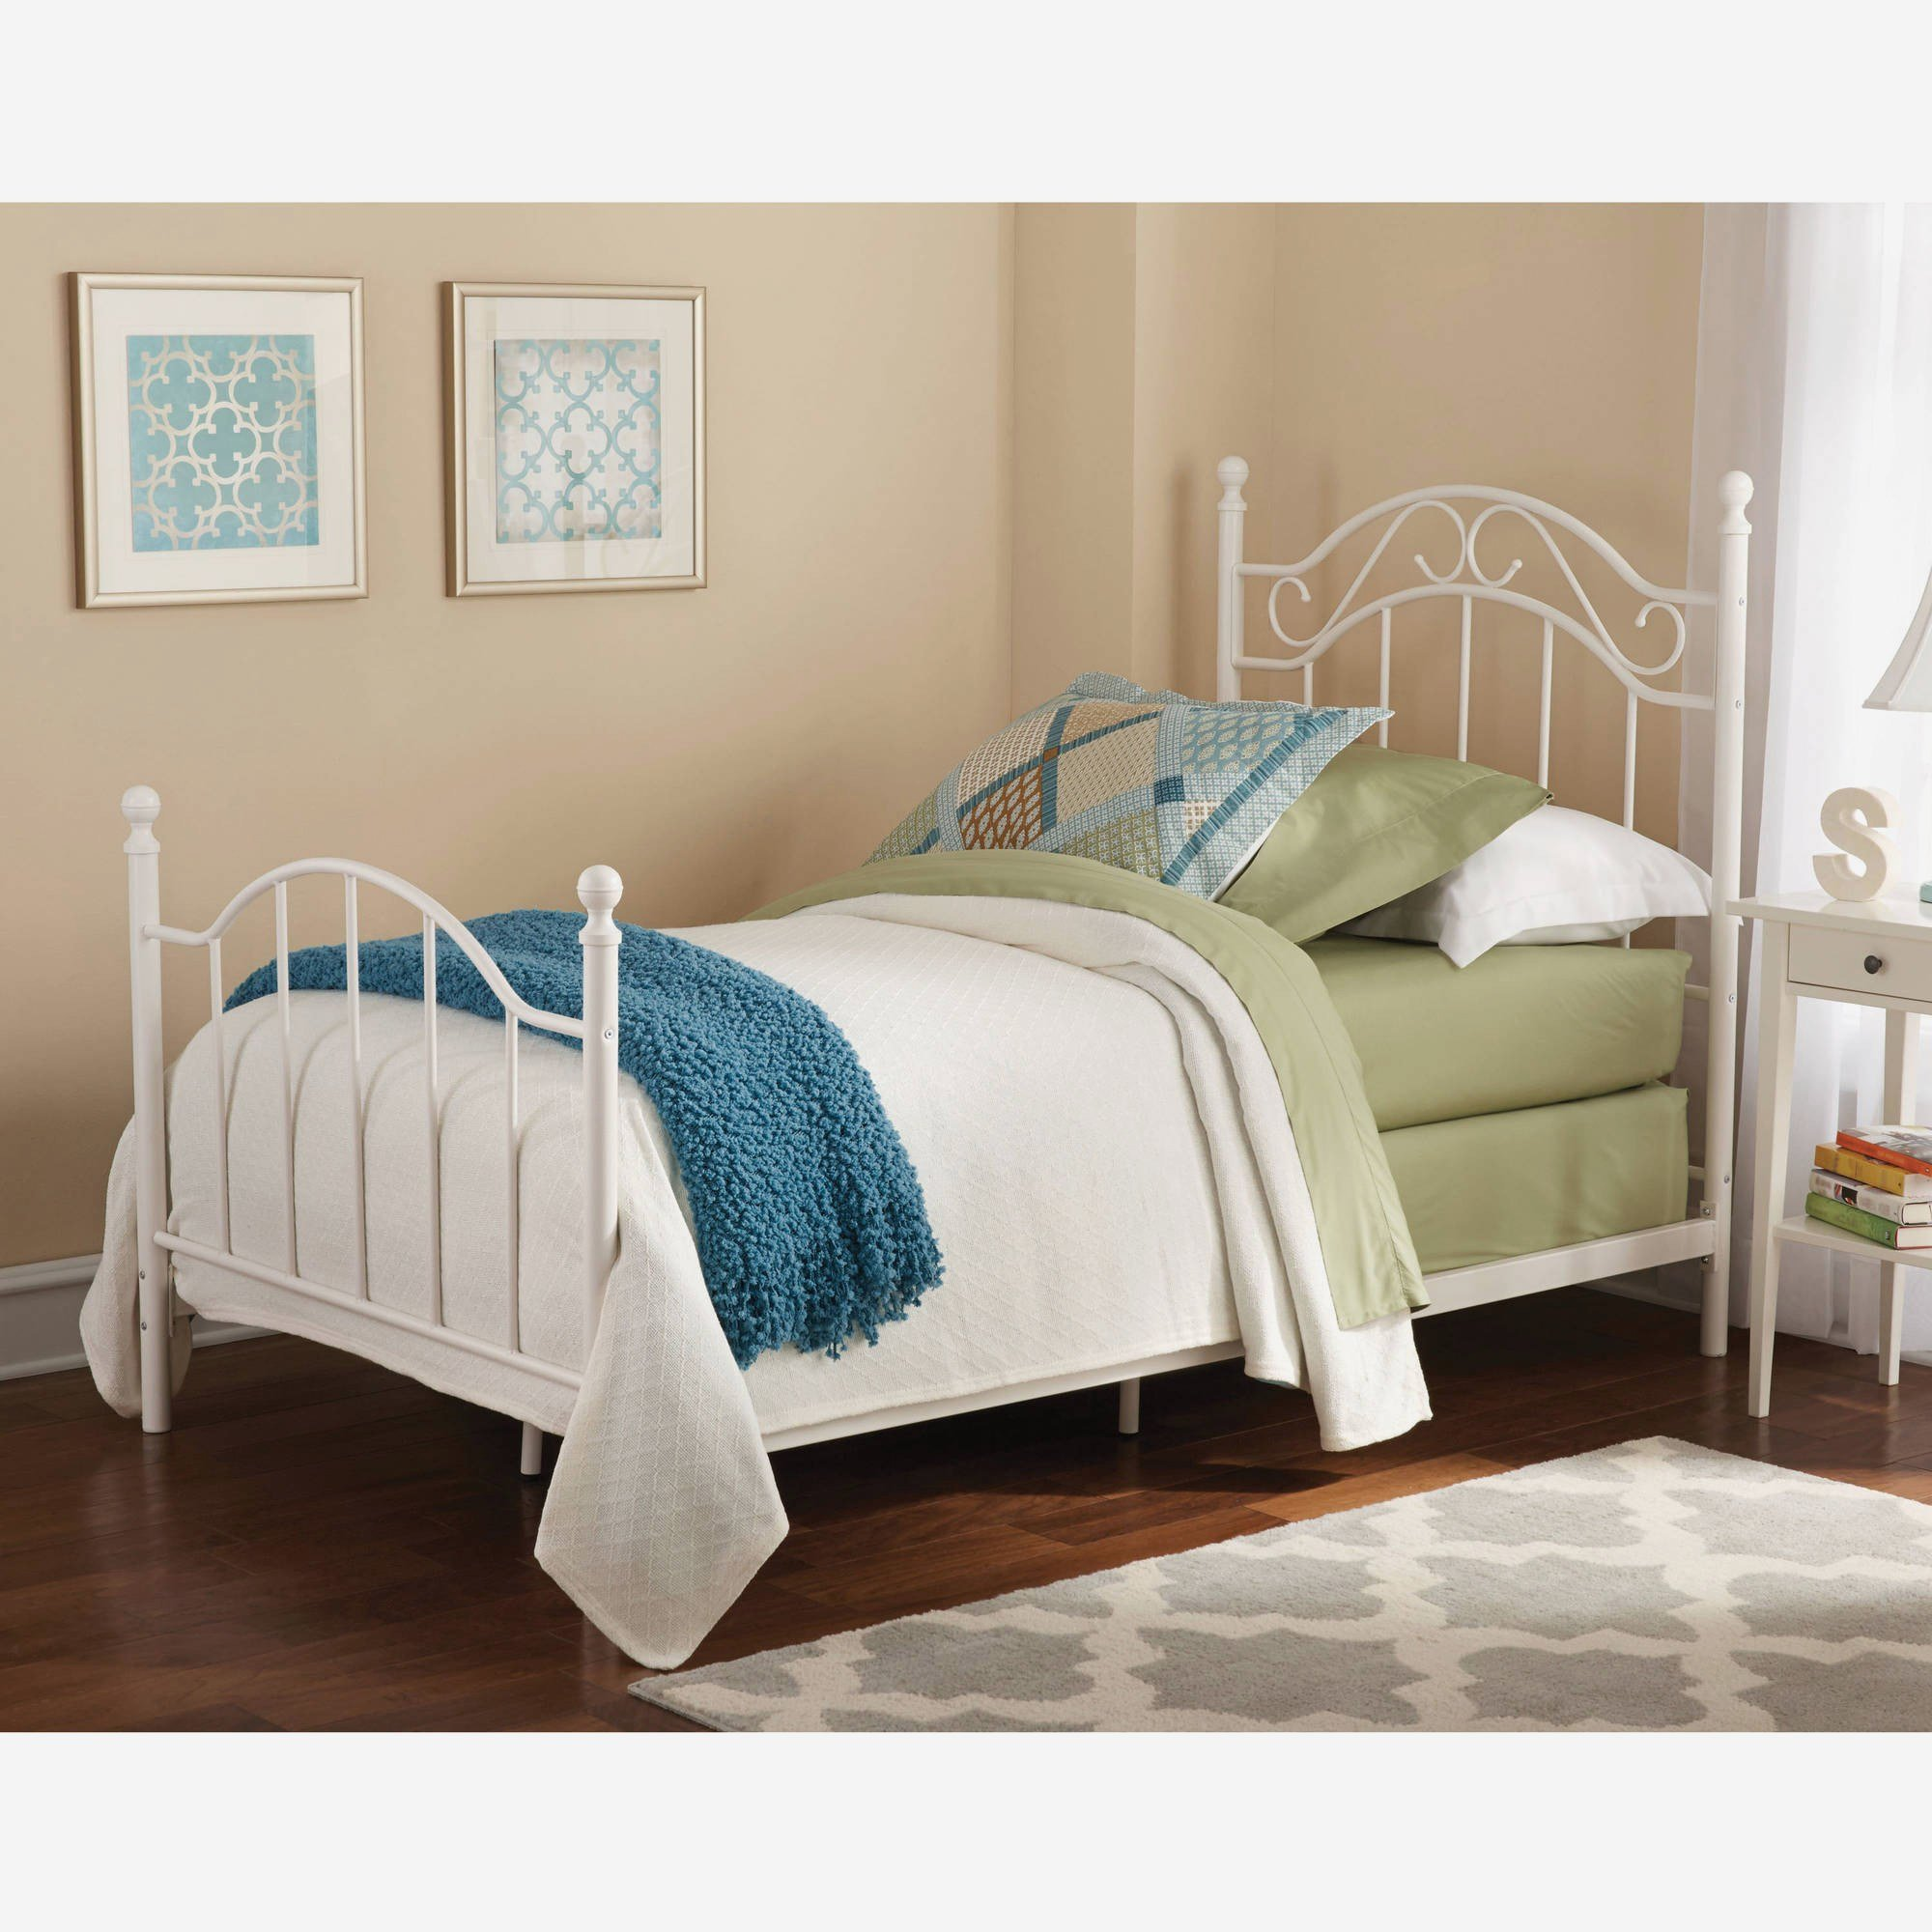 Best Walmart Childrens Bedroom Furniture Gammoe Com With Pictures